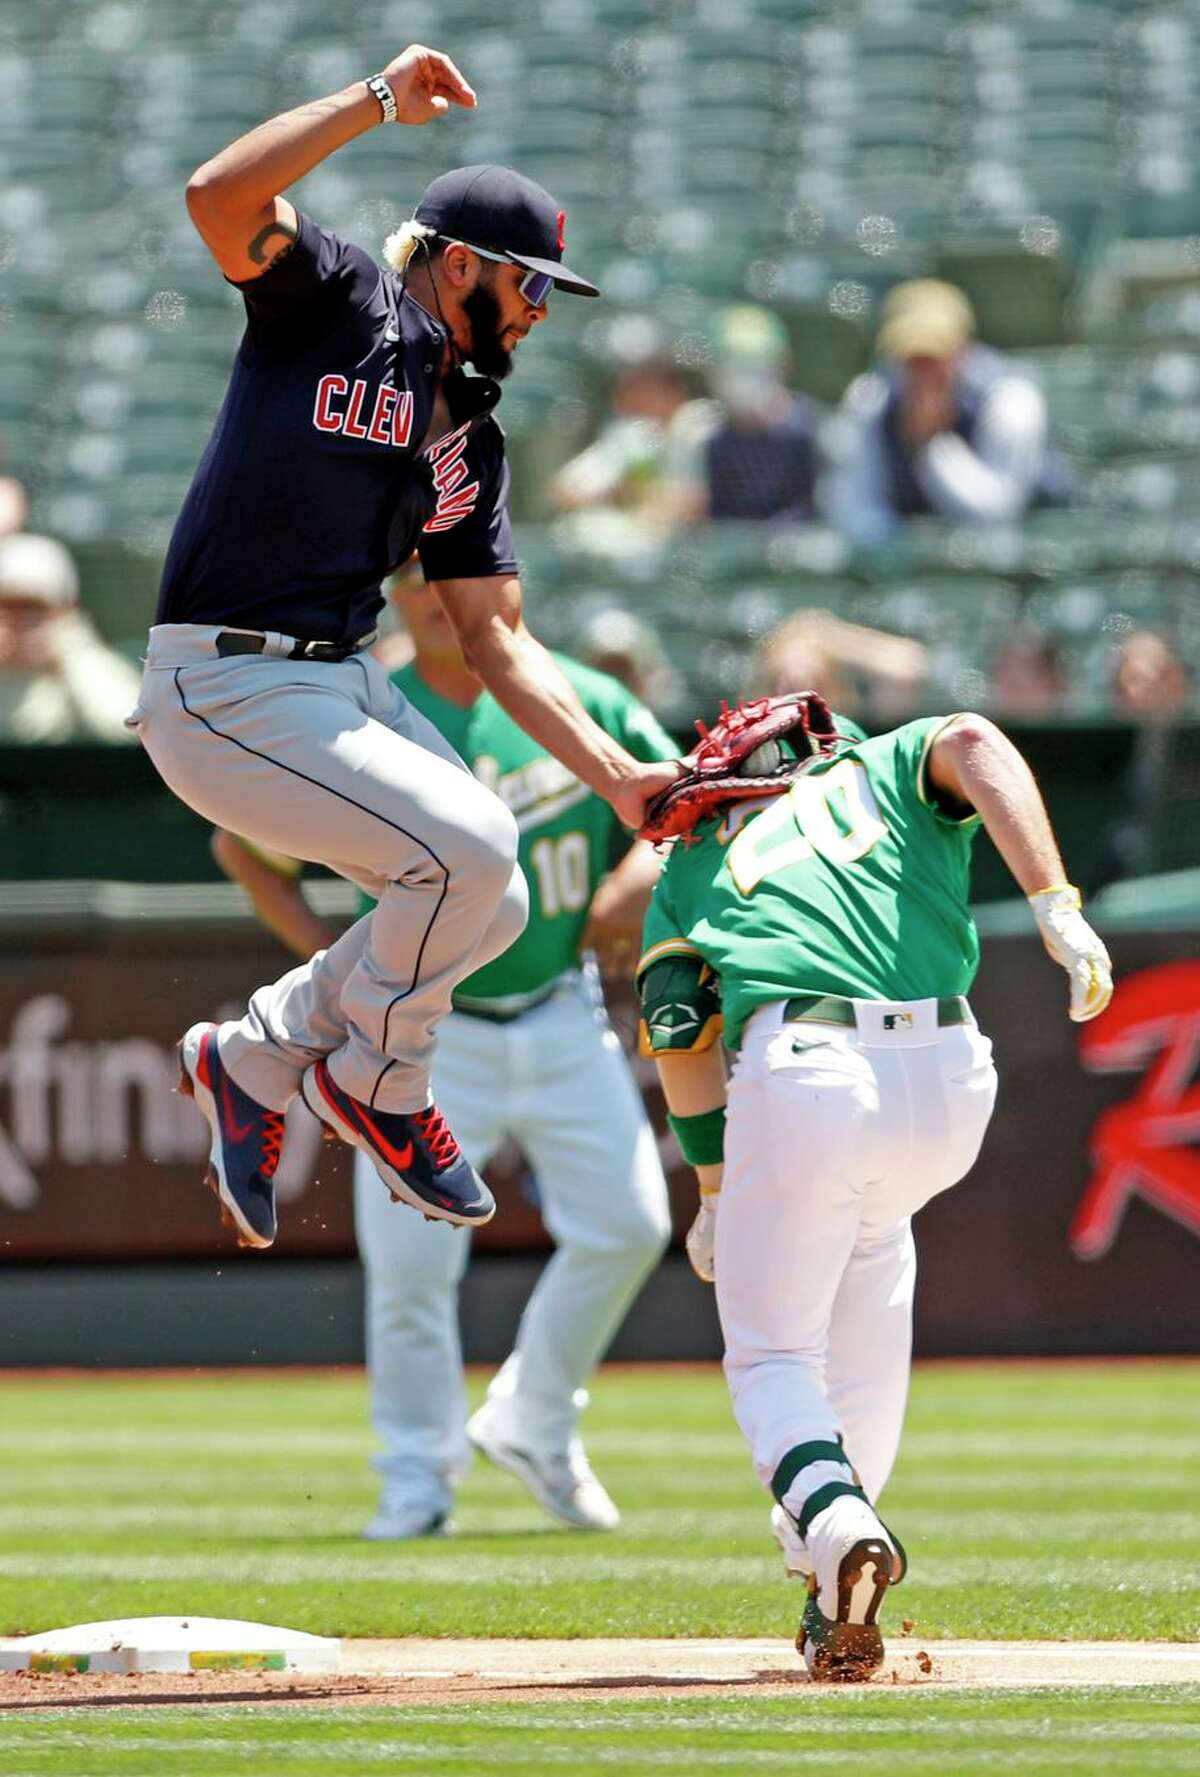 A's slugger Mark Canha is tagged out by Indians first baseman Bobby Bradley during the first inning at Oakland Coliseum.